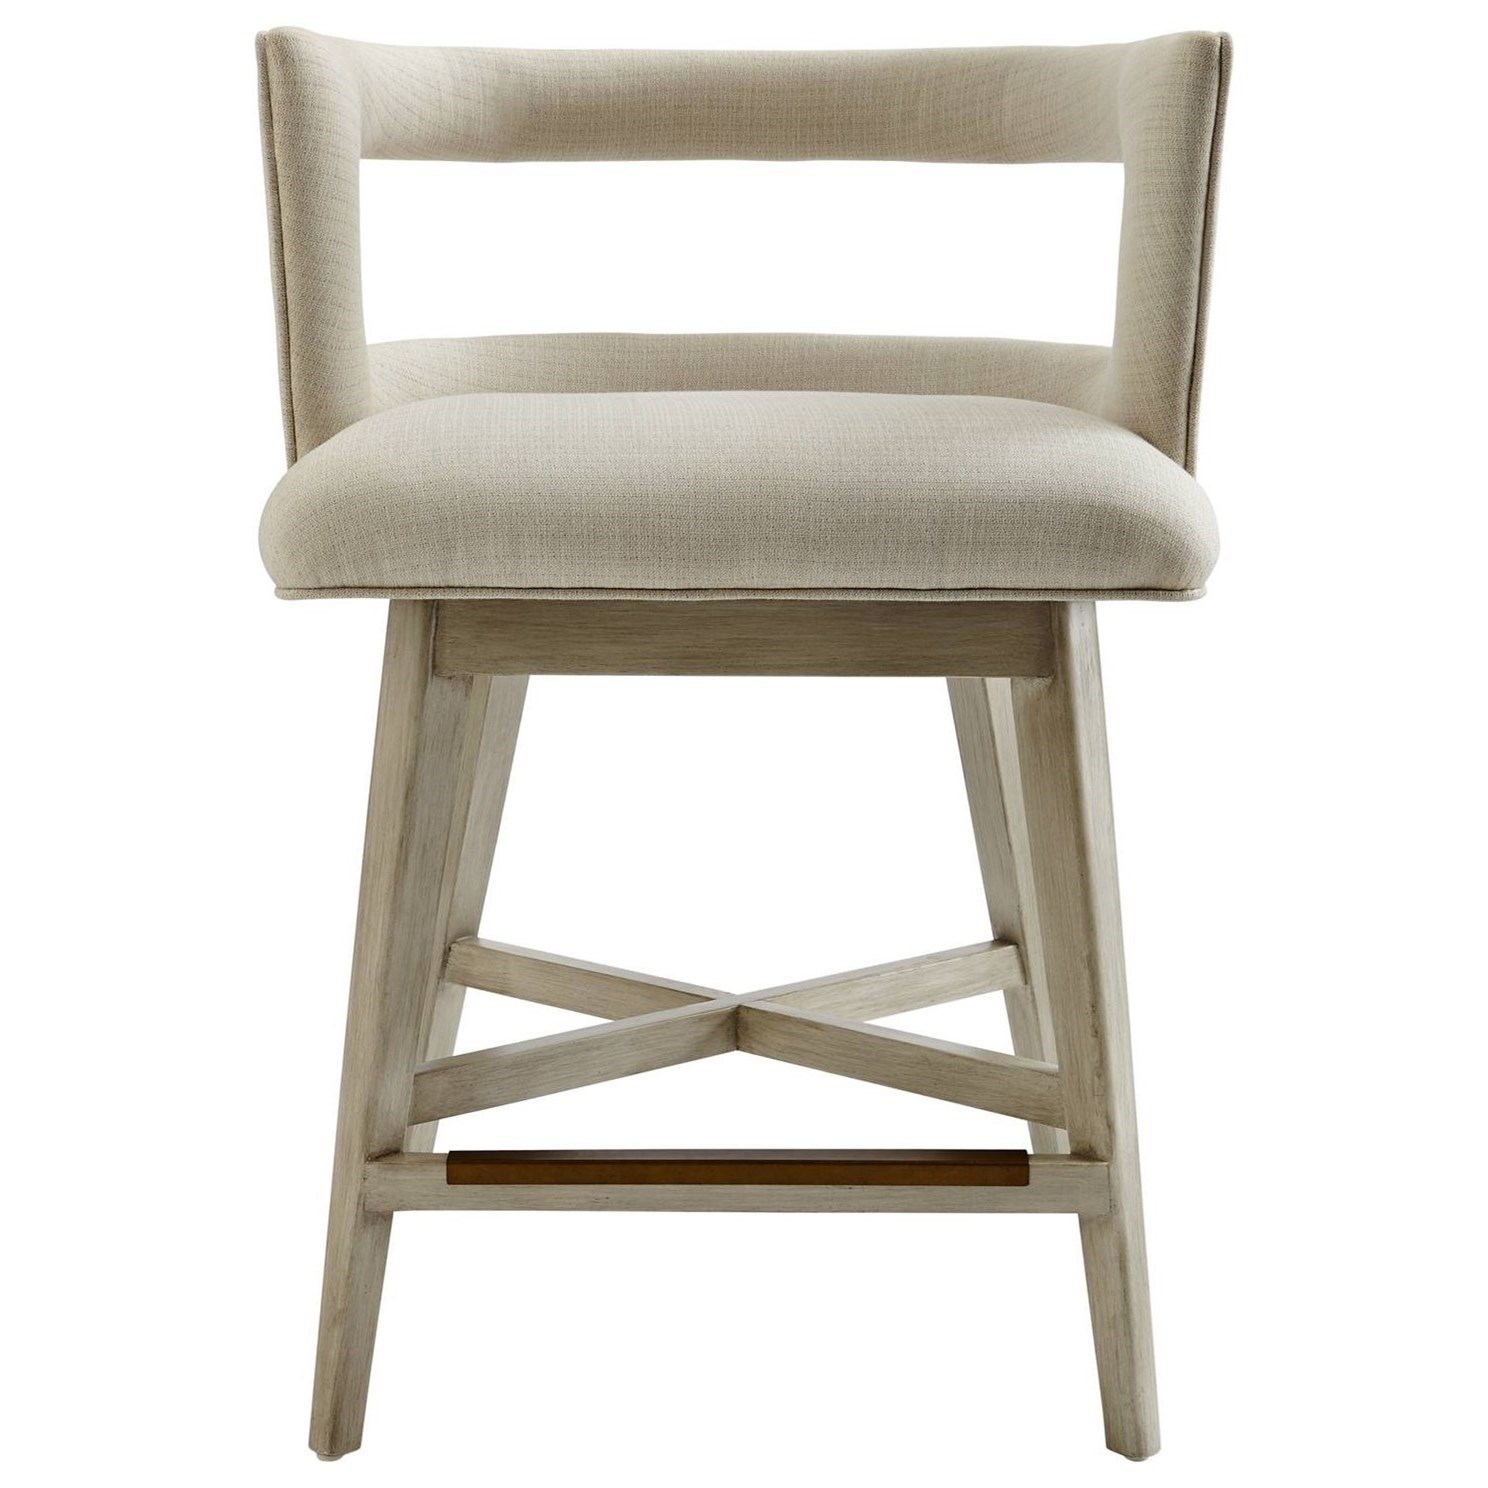 Stanley Furniture Coastal Living Oasis Crestwood Counter Stool - Item Number: 527-51-72